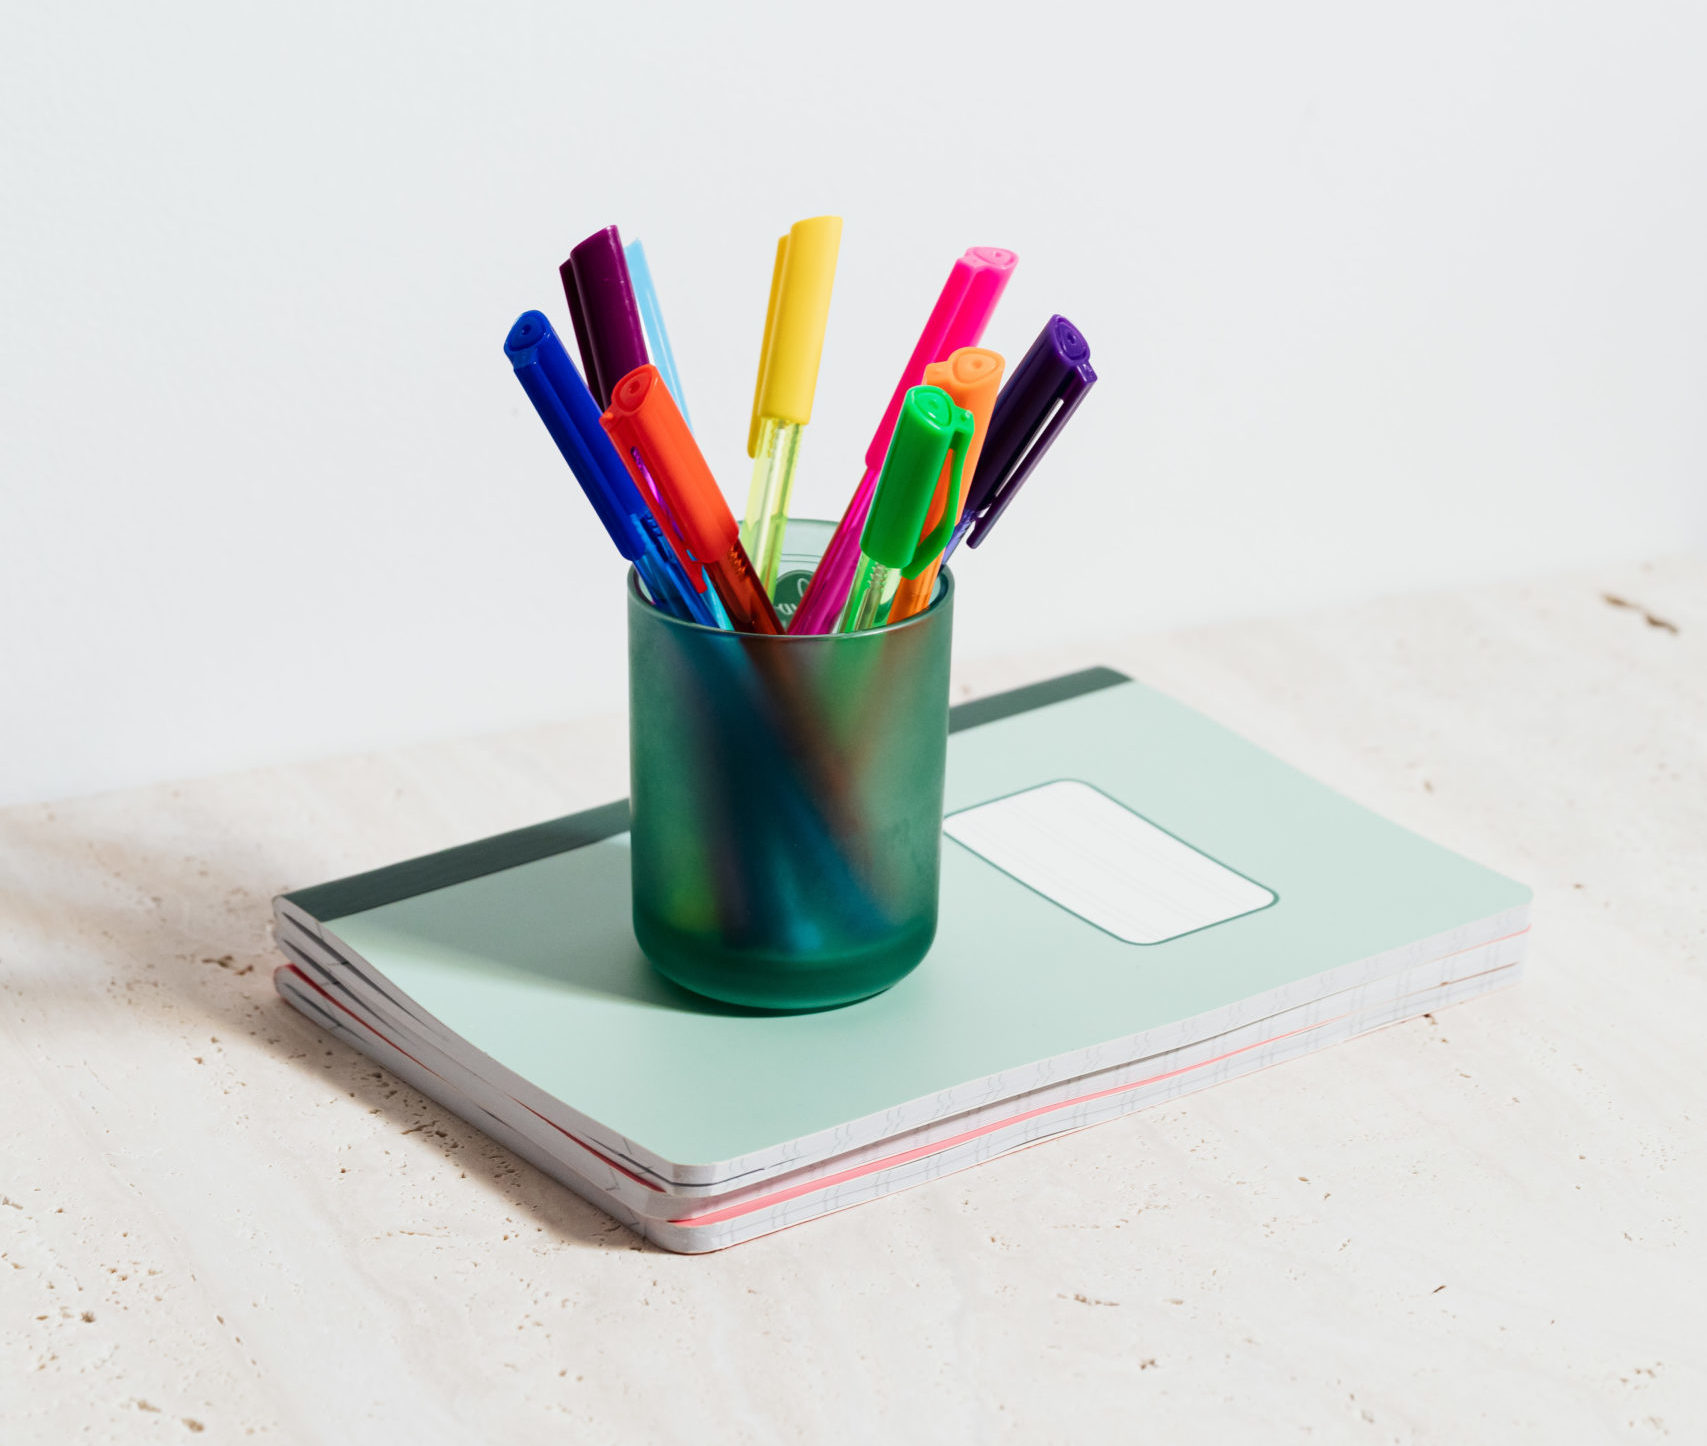 Picture of pens in a cup on a notebook.